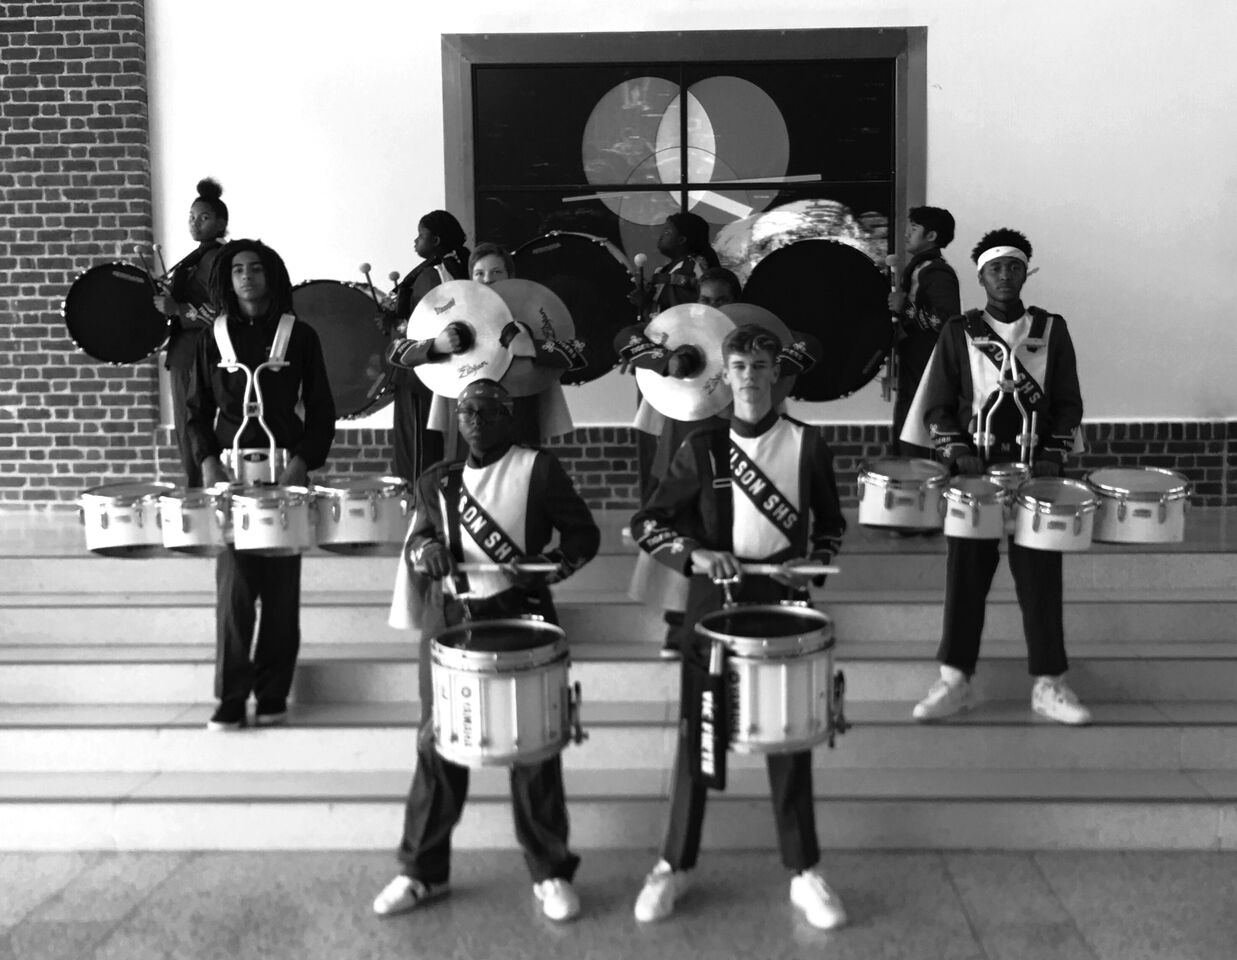 Drumline marches back to center stage